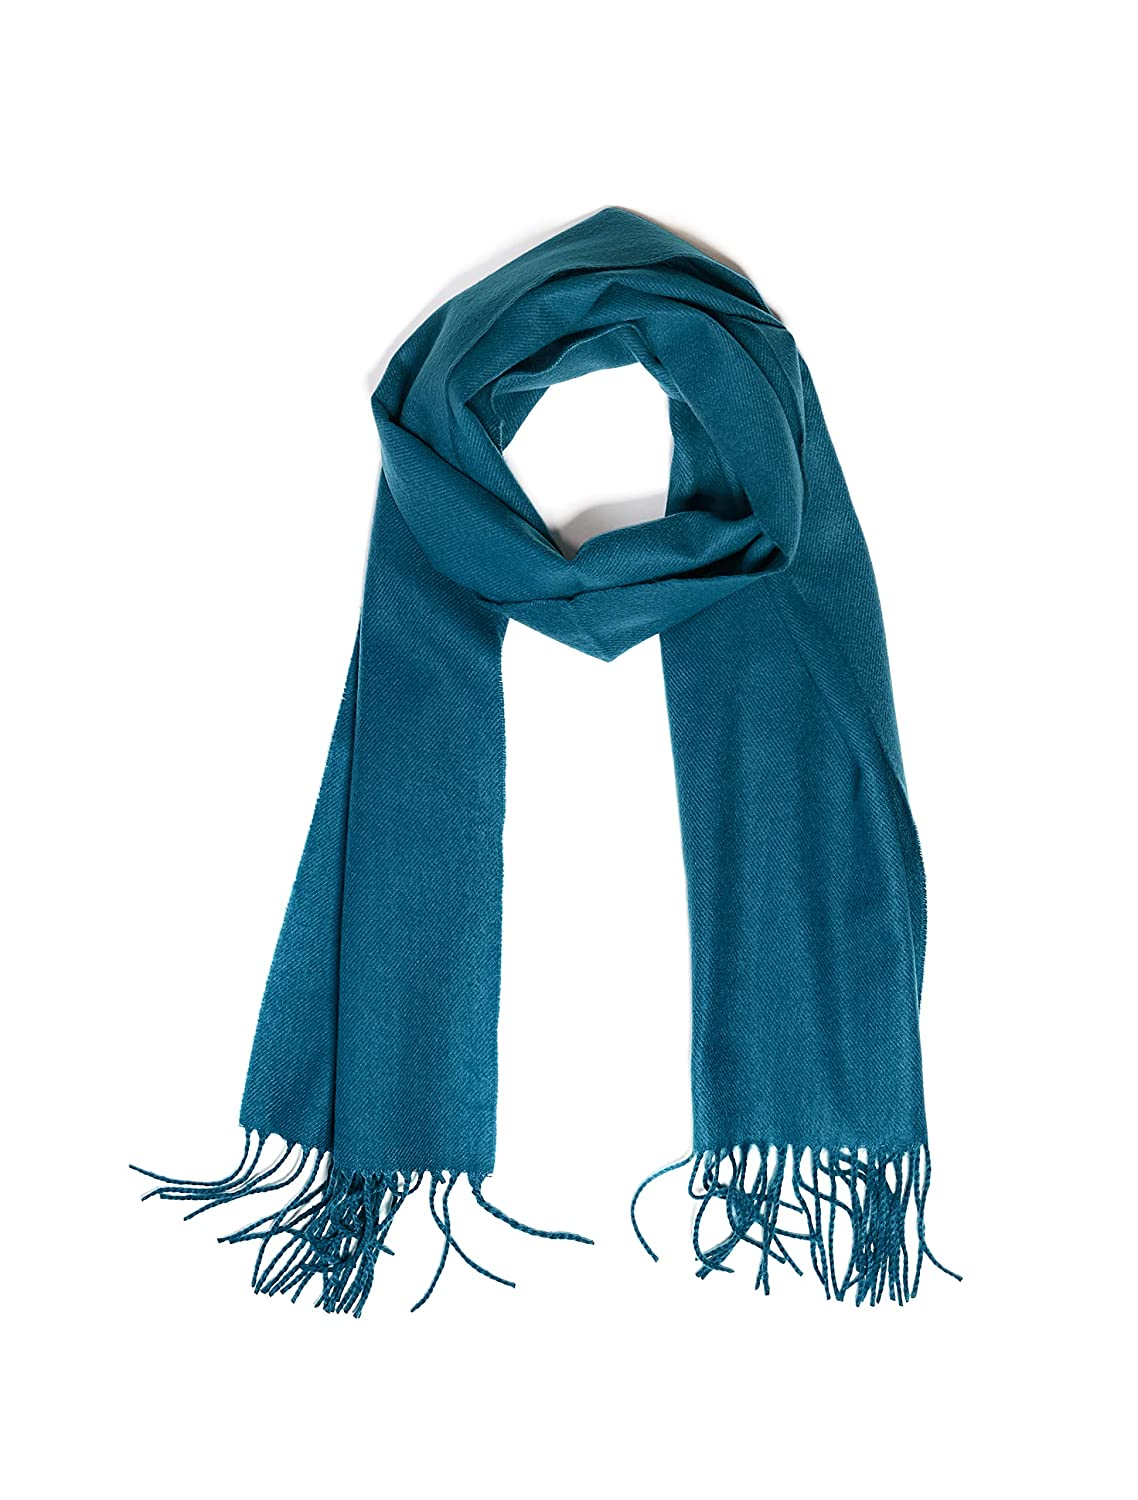 Teal INVERNO Super Soft Luxurious Cashmere Feel Warm Winter Solid Plain color Unisex Scarf